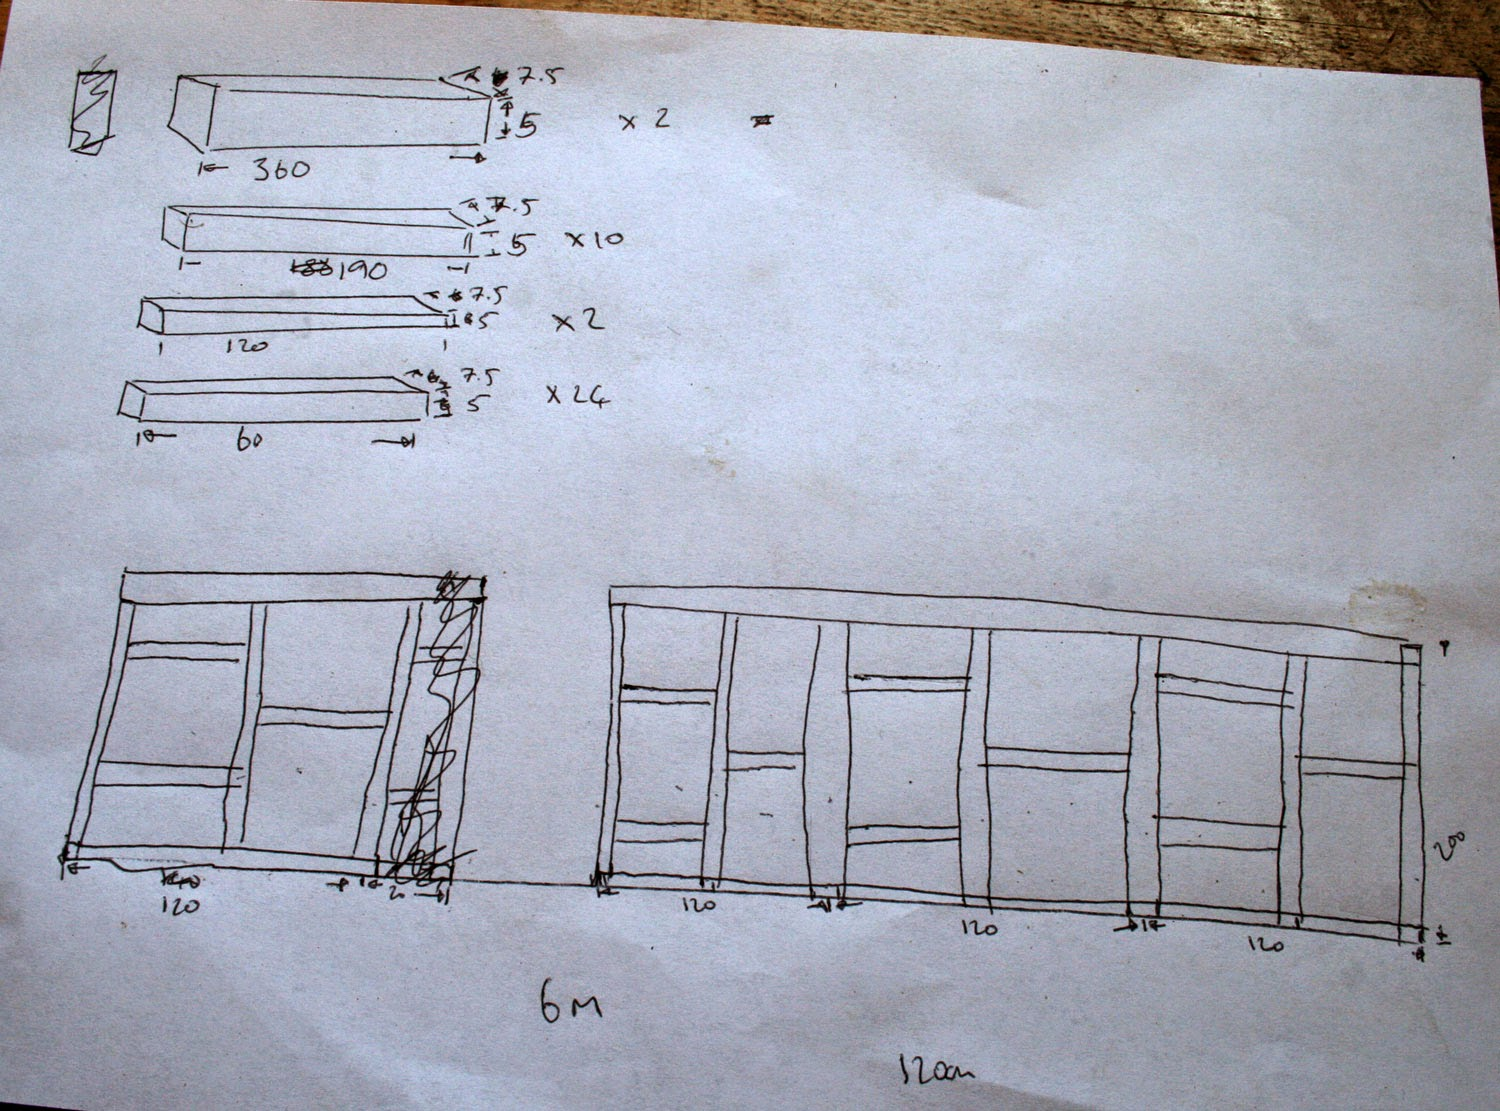 The wall with door space and wood requirements